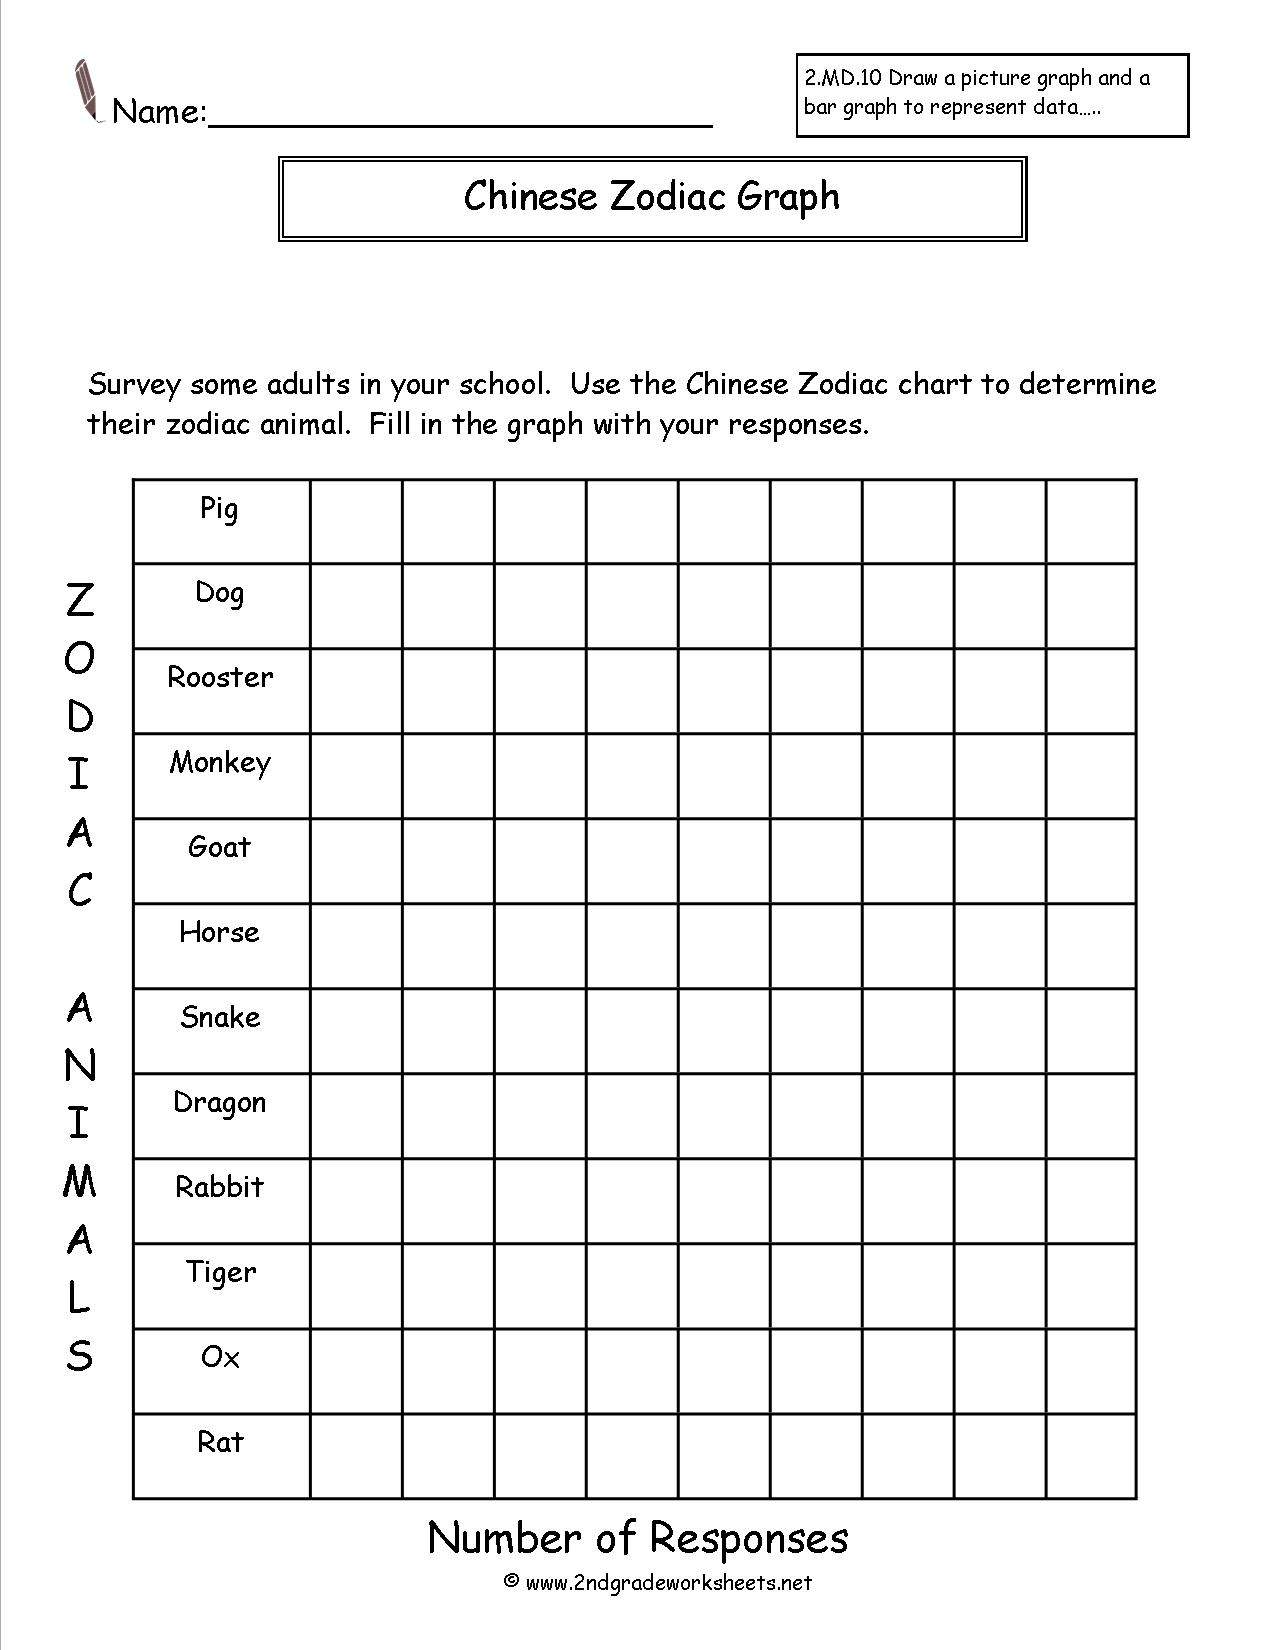 Free Reading And Creating Bar Graph Worksheets | Free Printable Bar Graph Worksheets For 3Rd Grade